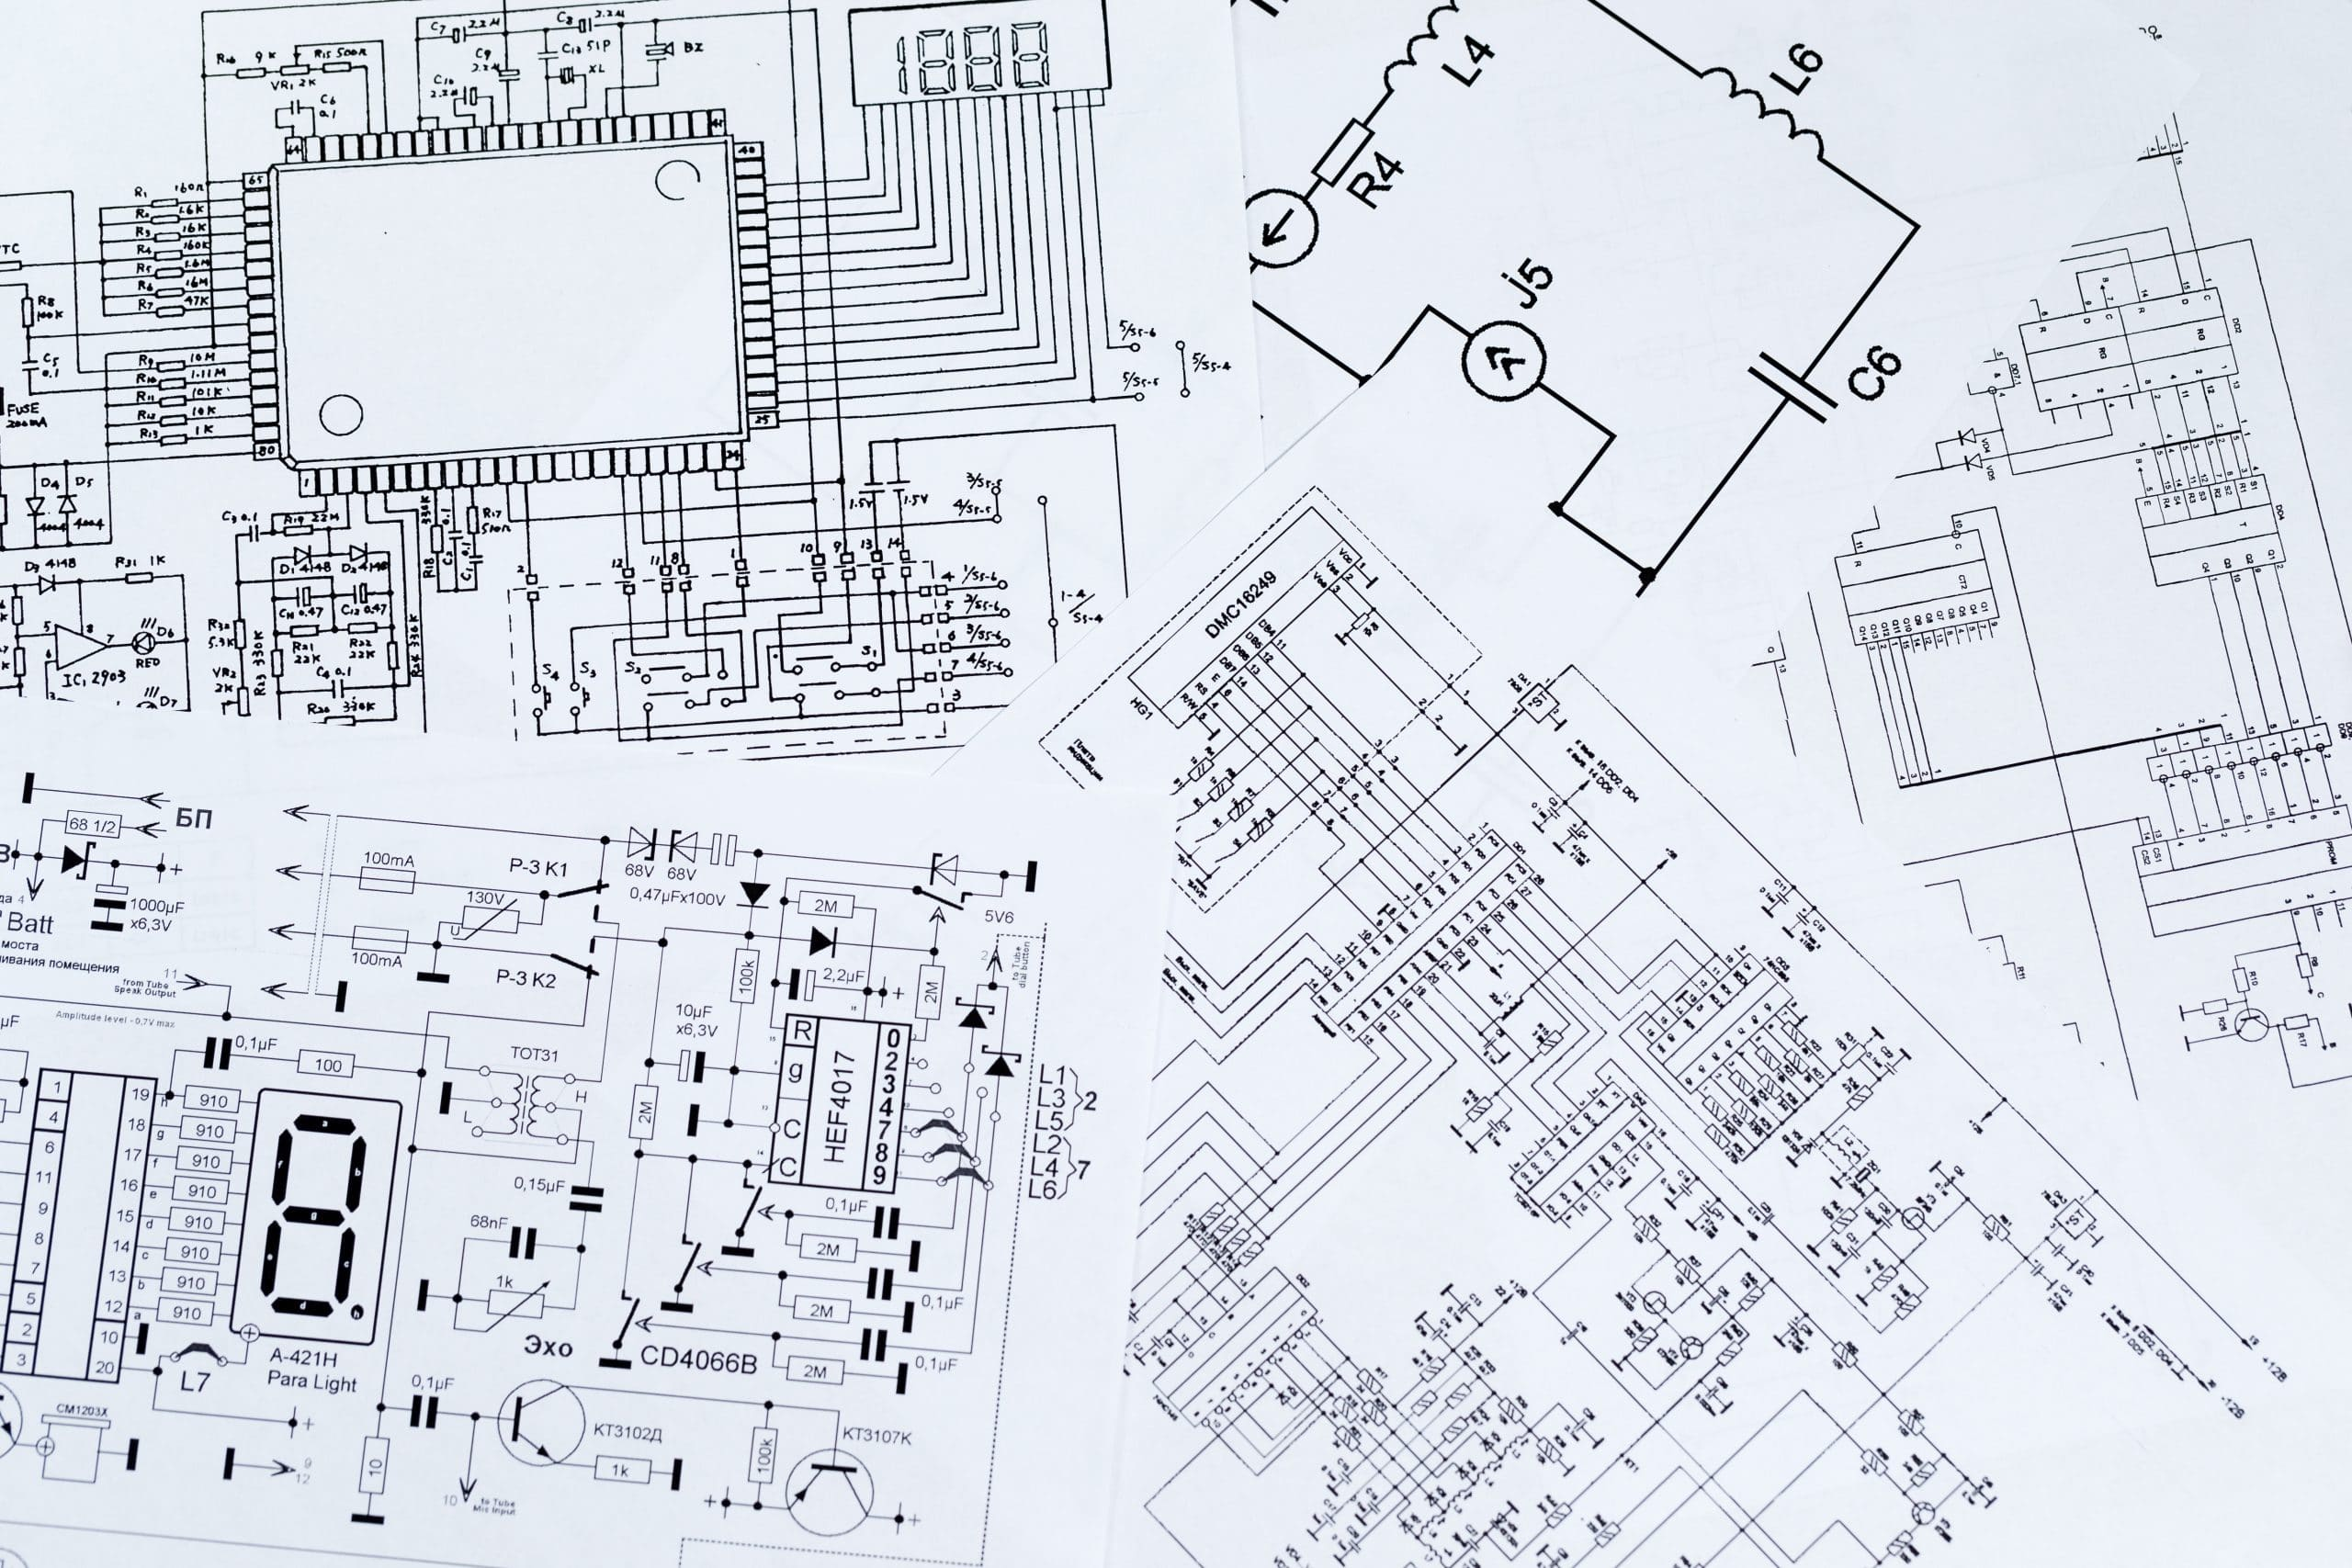 Schematic Drawings | Technical Line Drawings | 2D Drafting | CAD Service